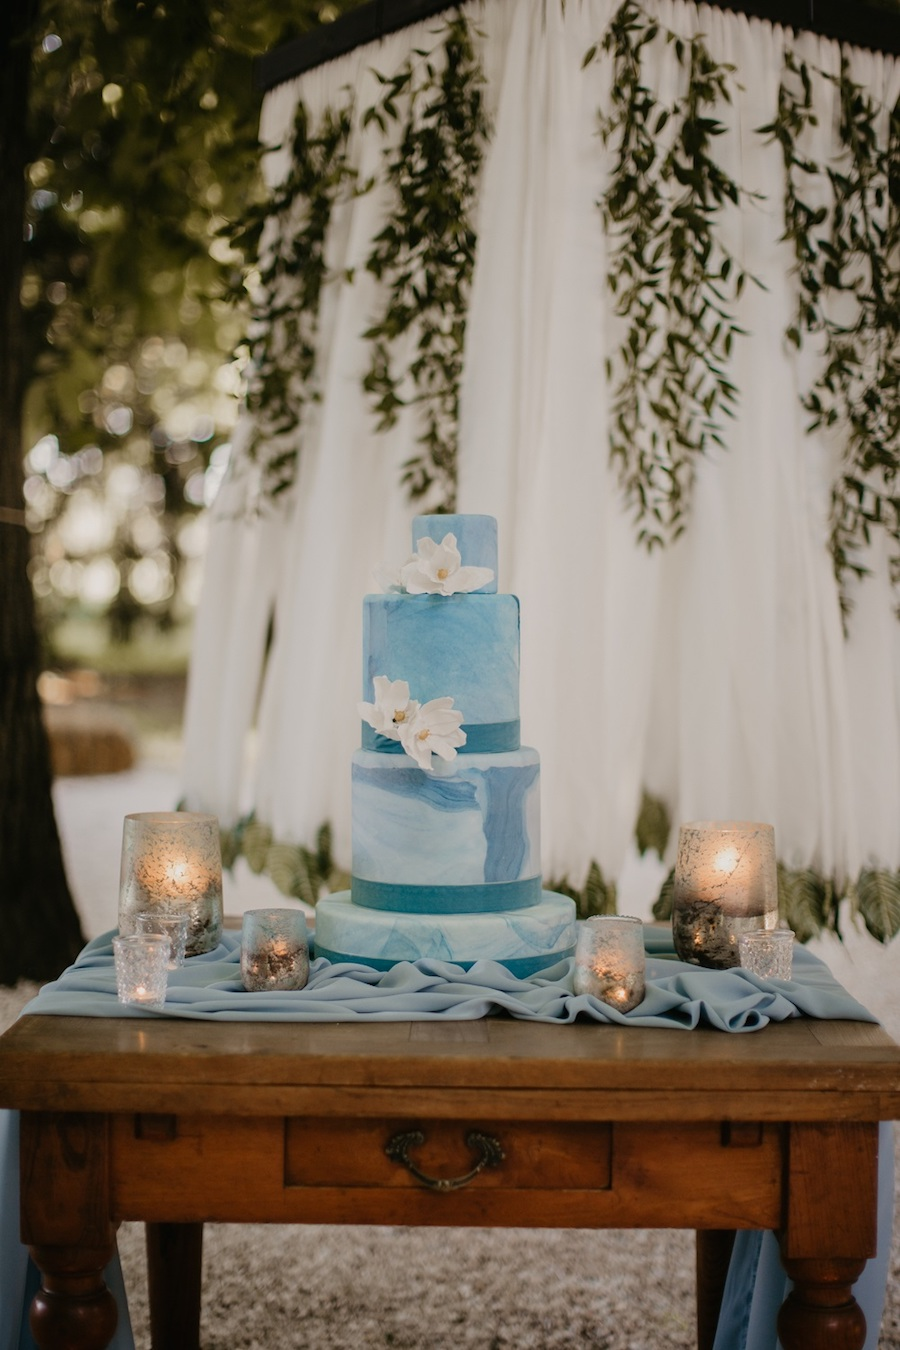 wedding cake azzurro acquerello